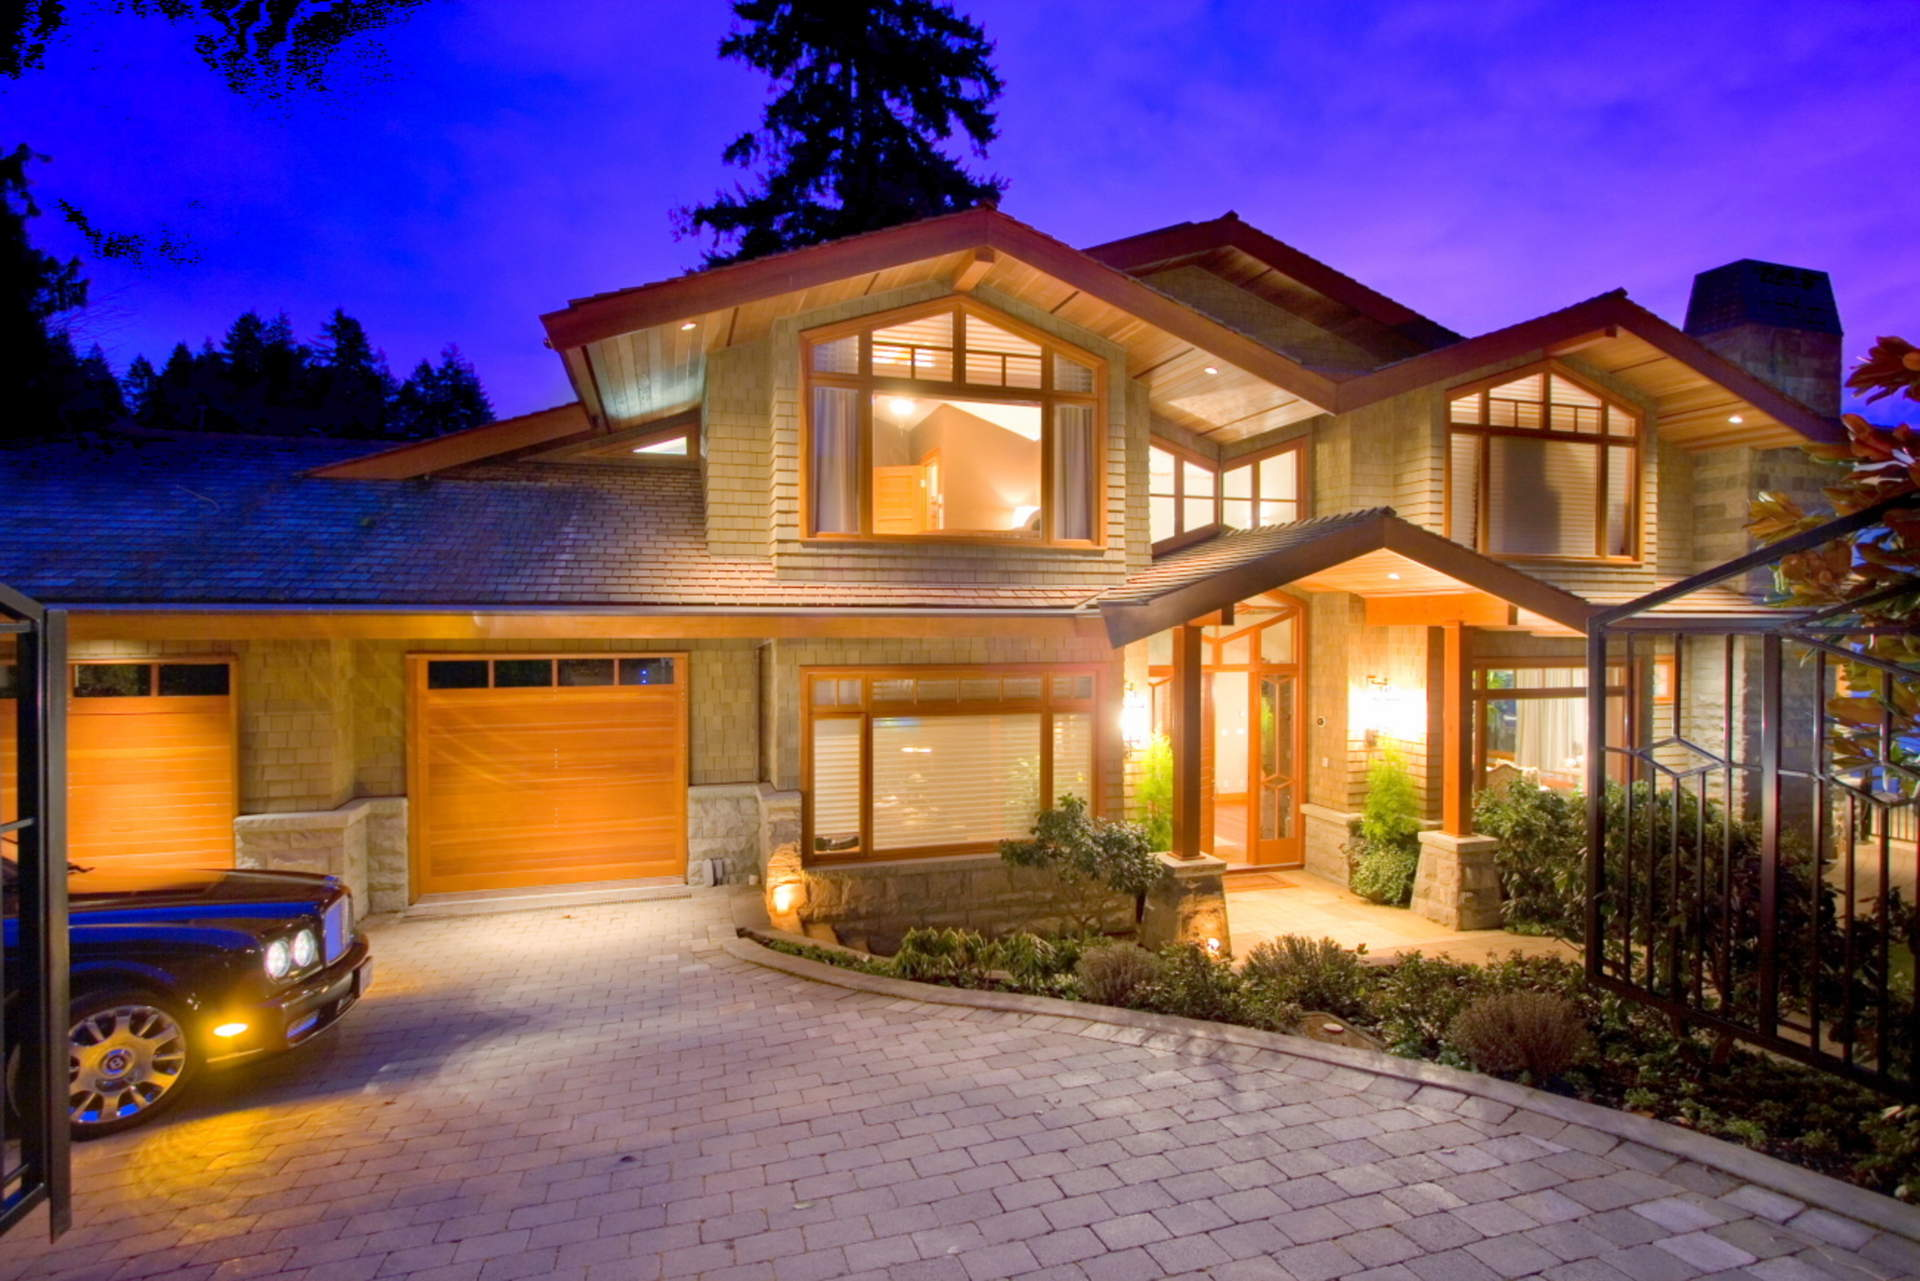 4367 Erwin Drive - West Vancouver Homes and Real Estate